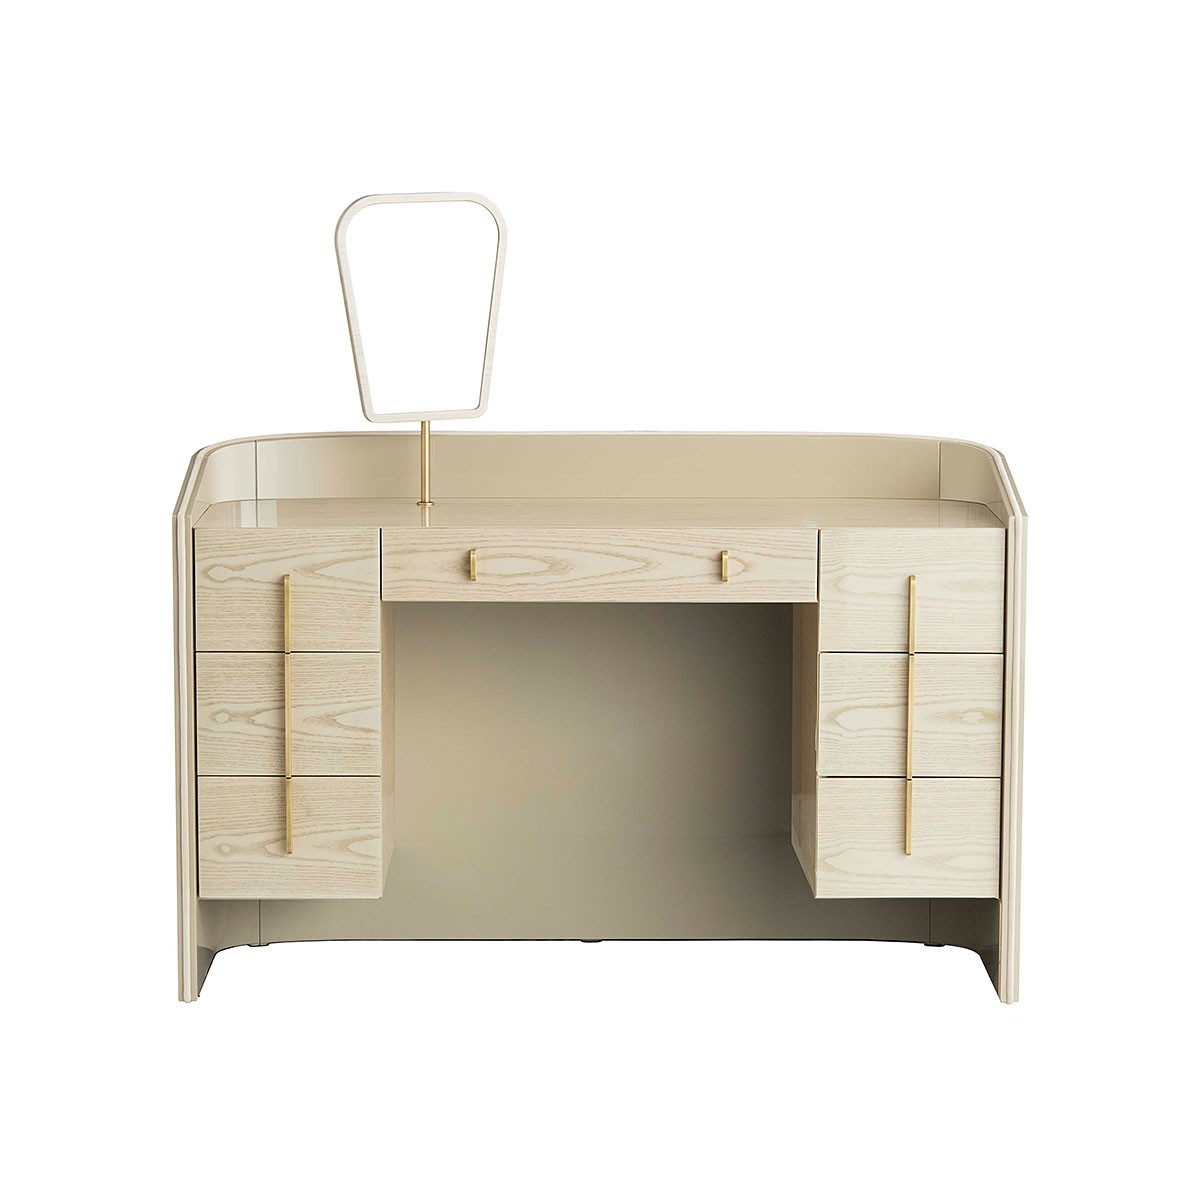 The Clara Dressing Table